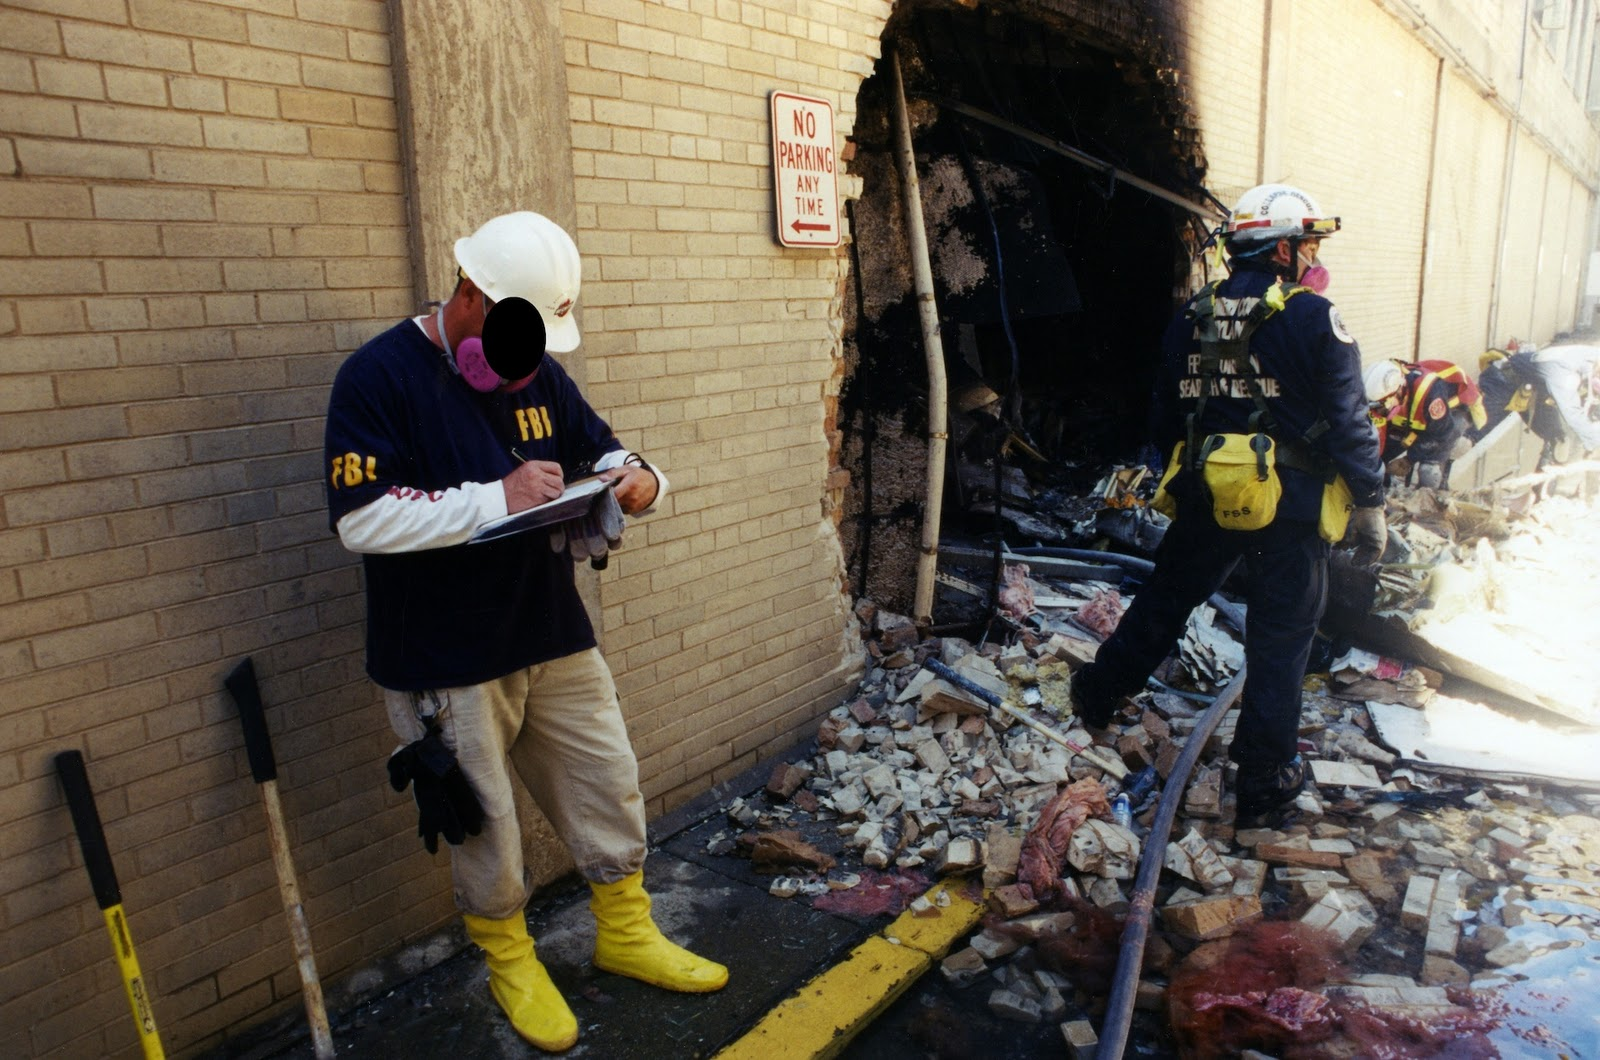 911 Photos Jumpers After  11 Photos  WARNING GRAPHIC